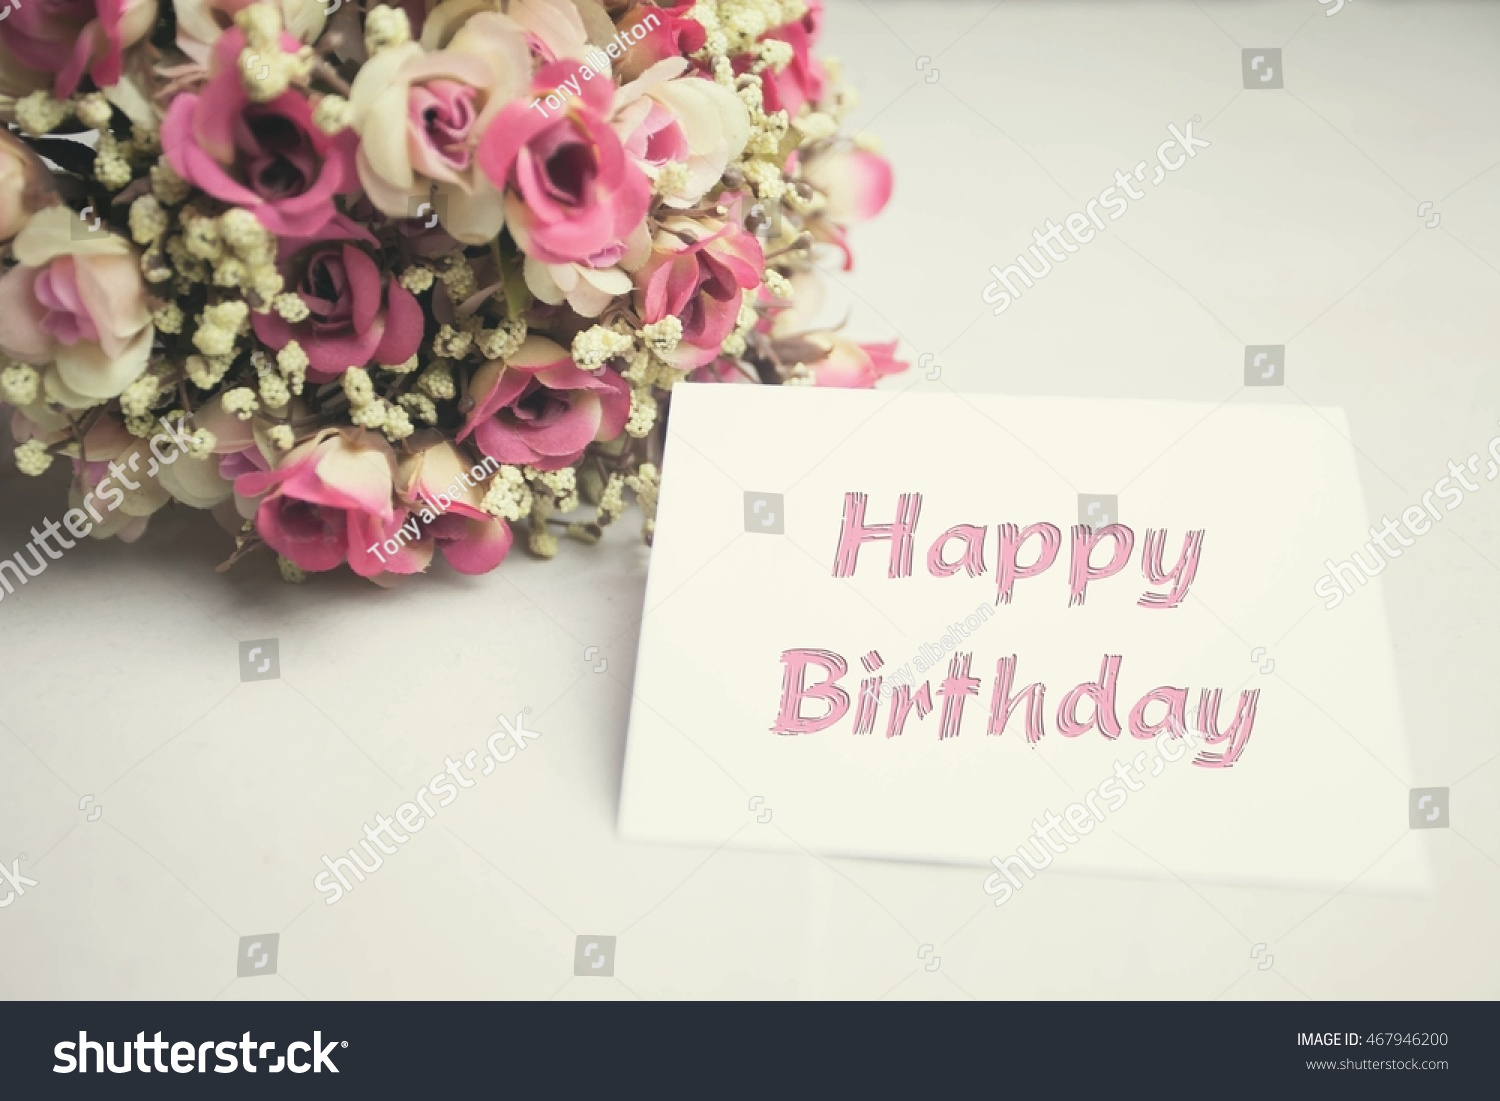 royalty free vintage flowers and card happy birthday 467946200